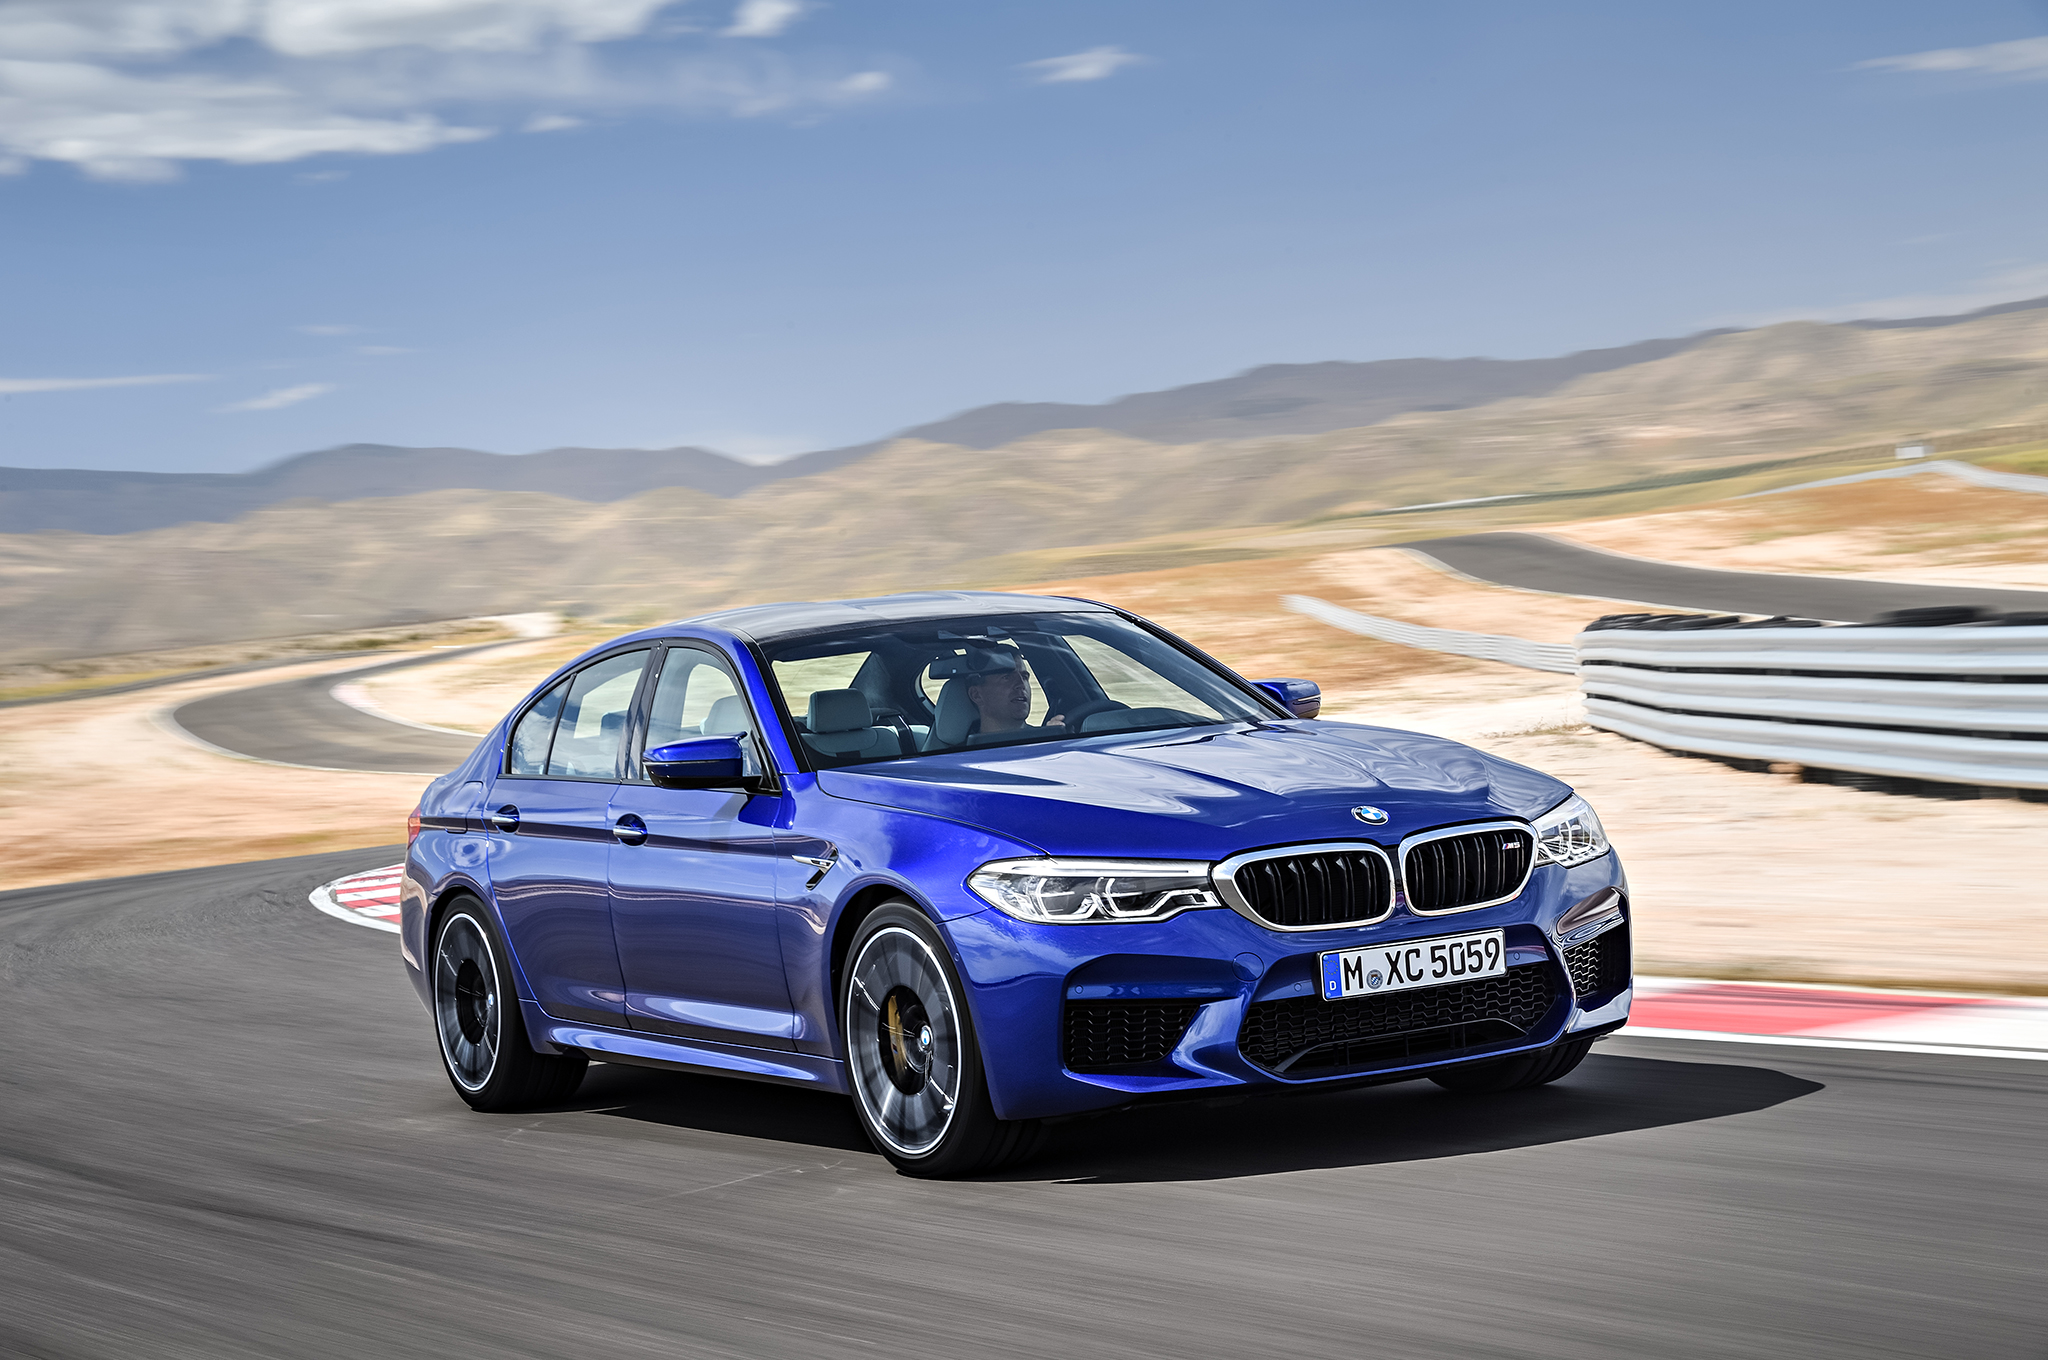 2018 bmw m5. brilliant 2018 2018 bmw m5 bmw m5 price in india 2016 m5 to g